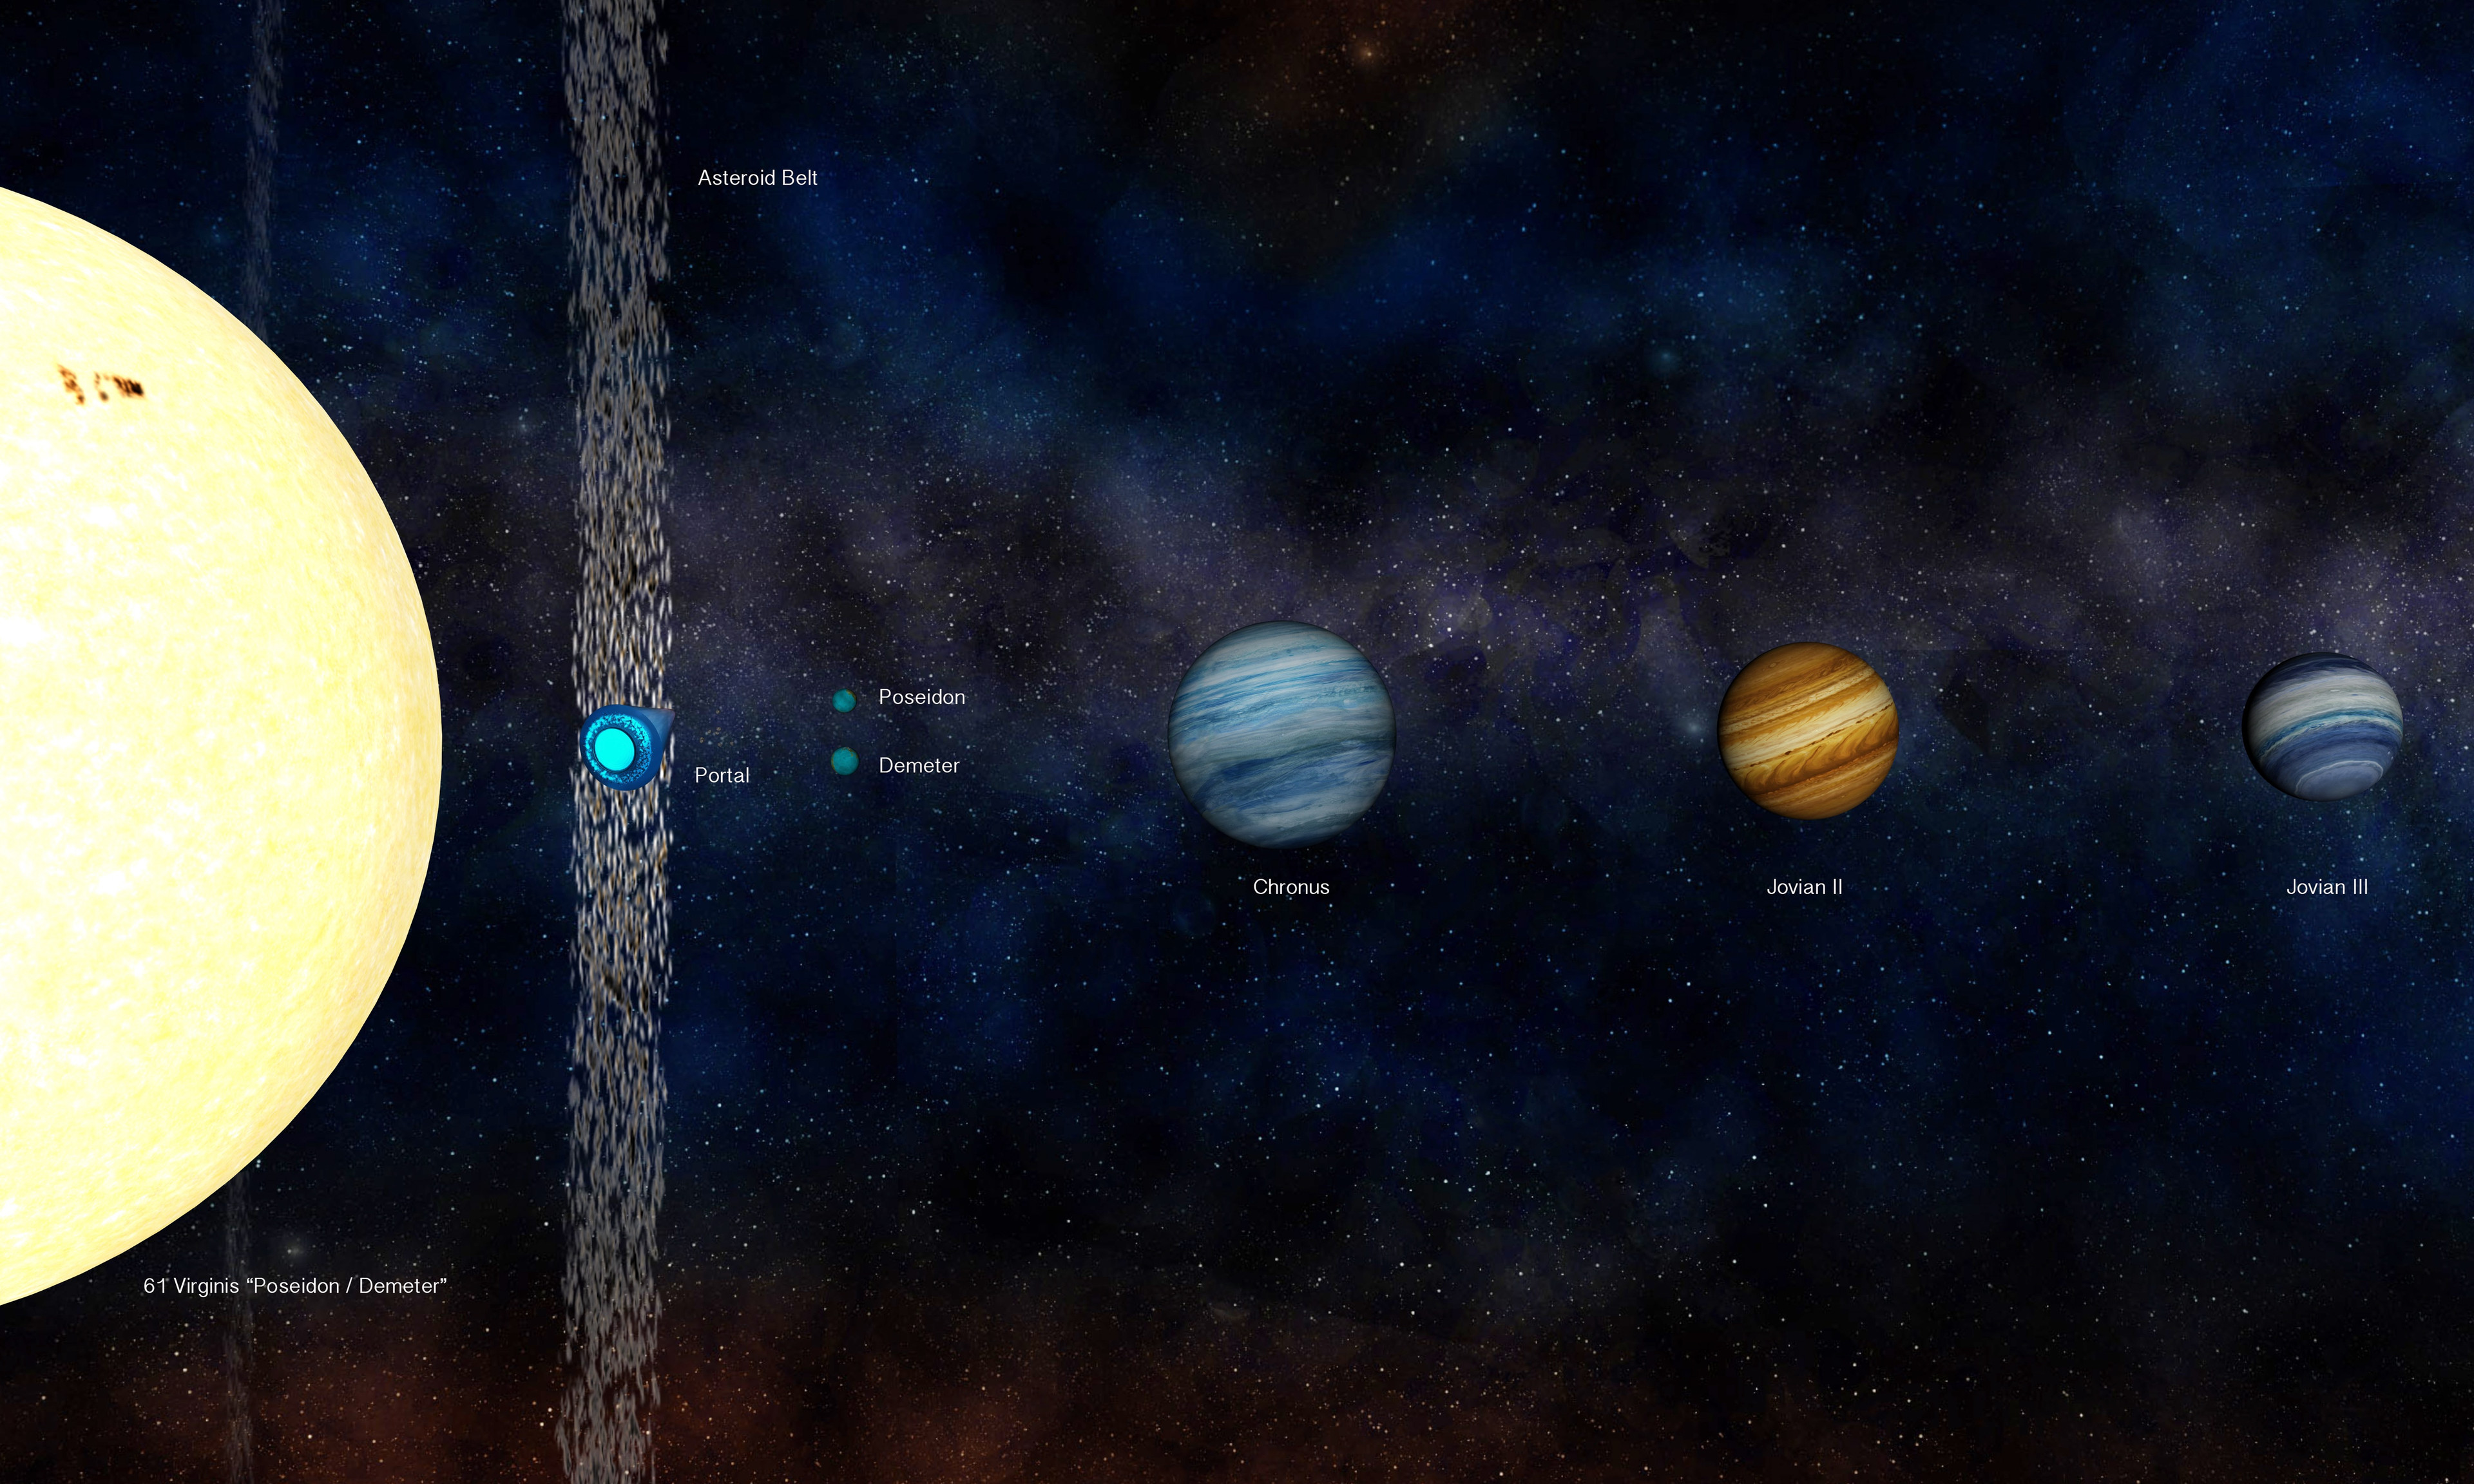 A Cosmography software space map for the Poseidon system.